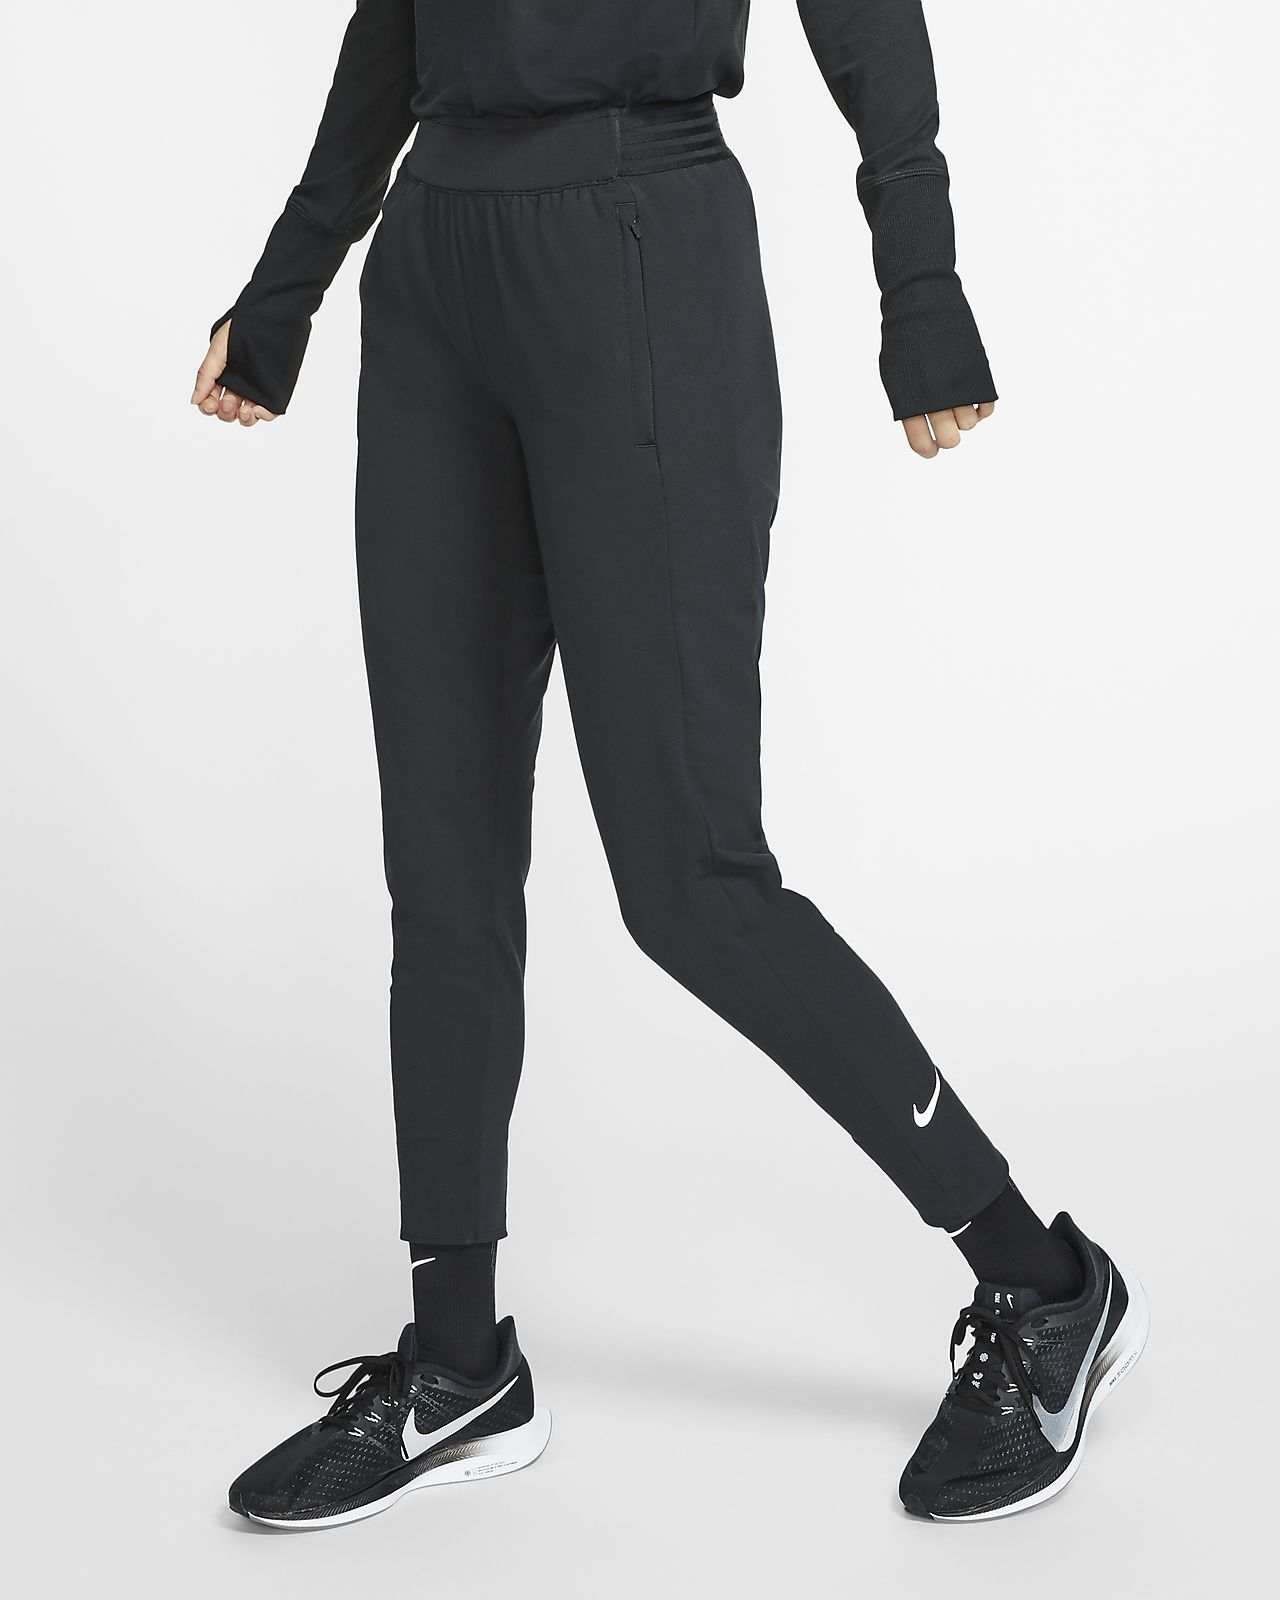 Nike Essential Women's Warm Running Pants